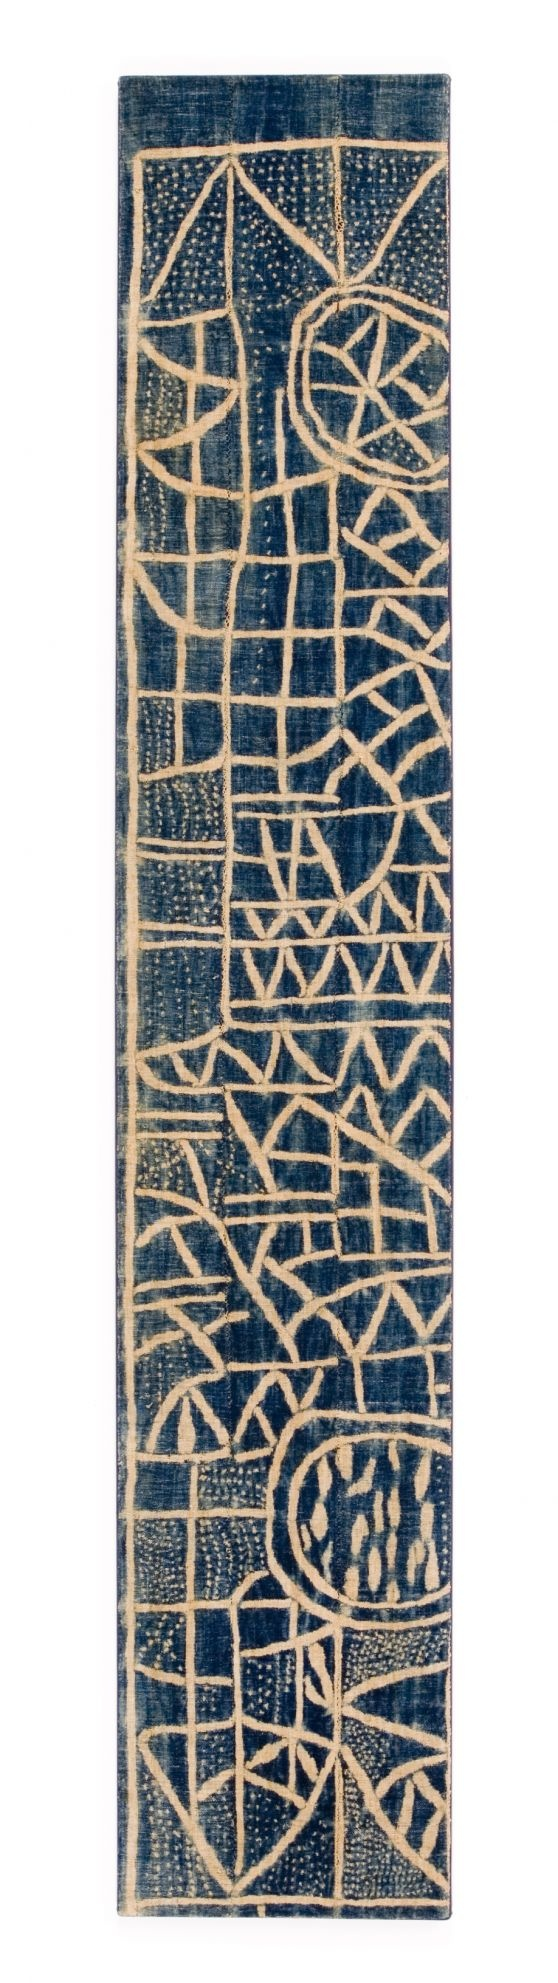 """Panel from a Ndop Ceremonial Hanging. Bamum or Bamileke people, Cameroon. First half 20th century Strip woven cotton stitch-resist dyed with indigo. Size: 12 3/4"""" x 69"""" (32 x 172.5cm)."""